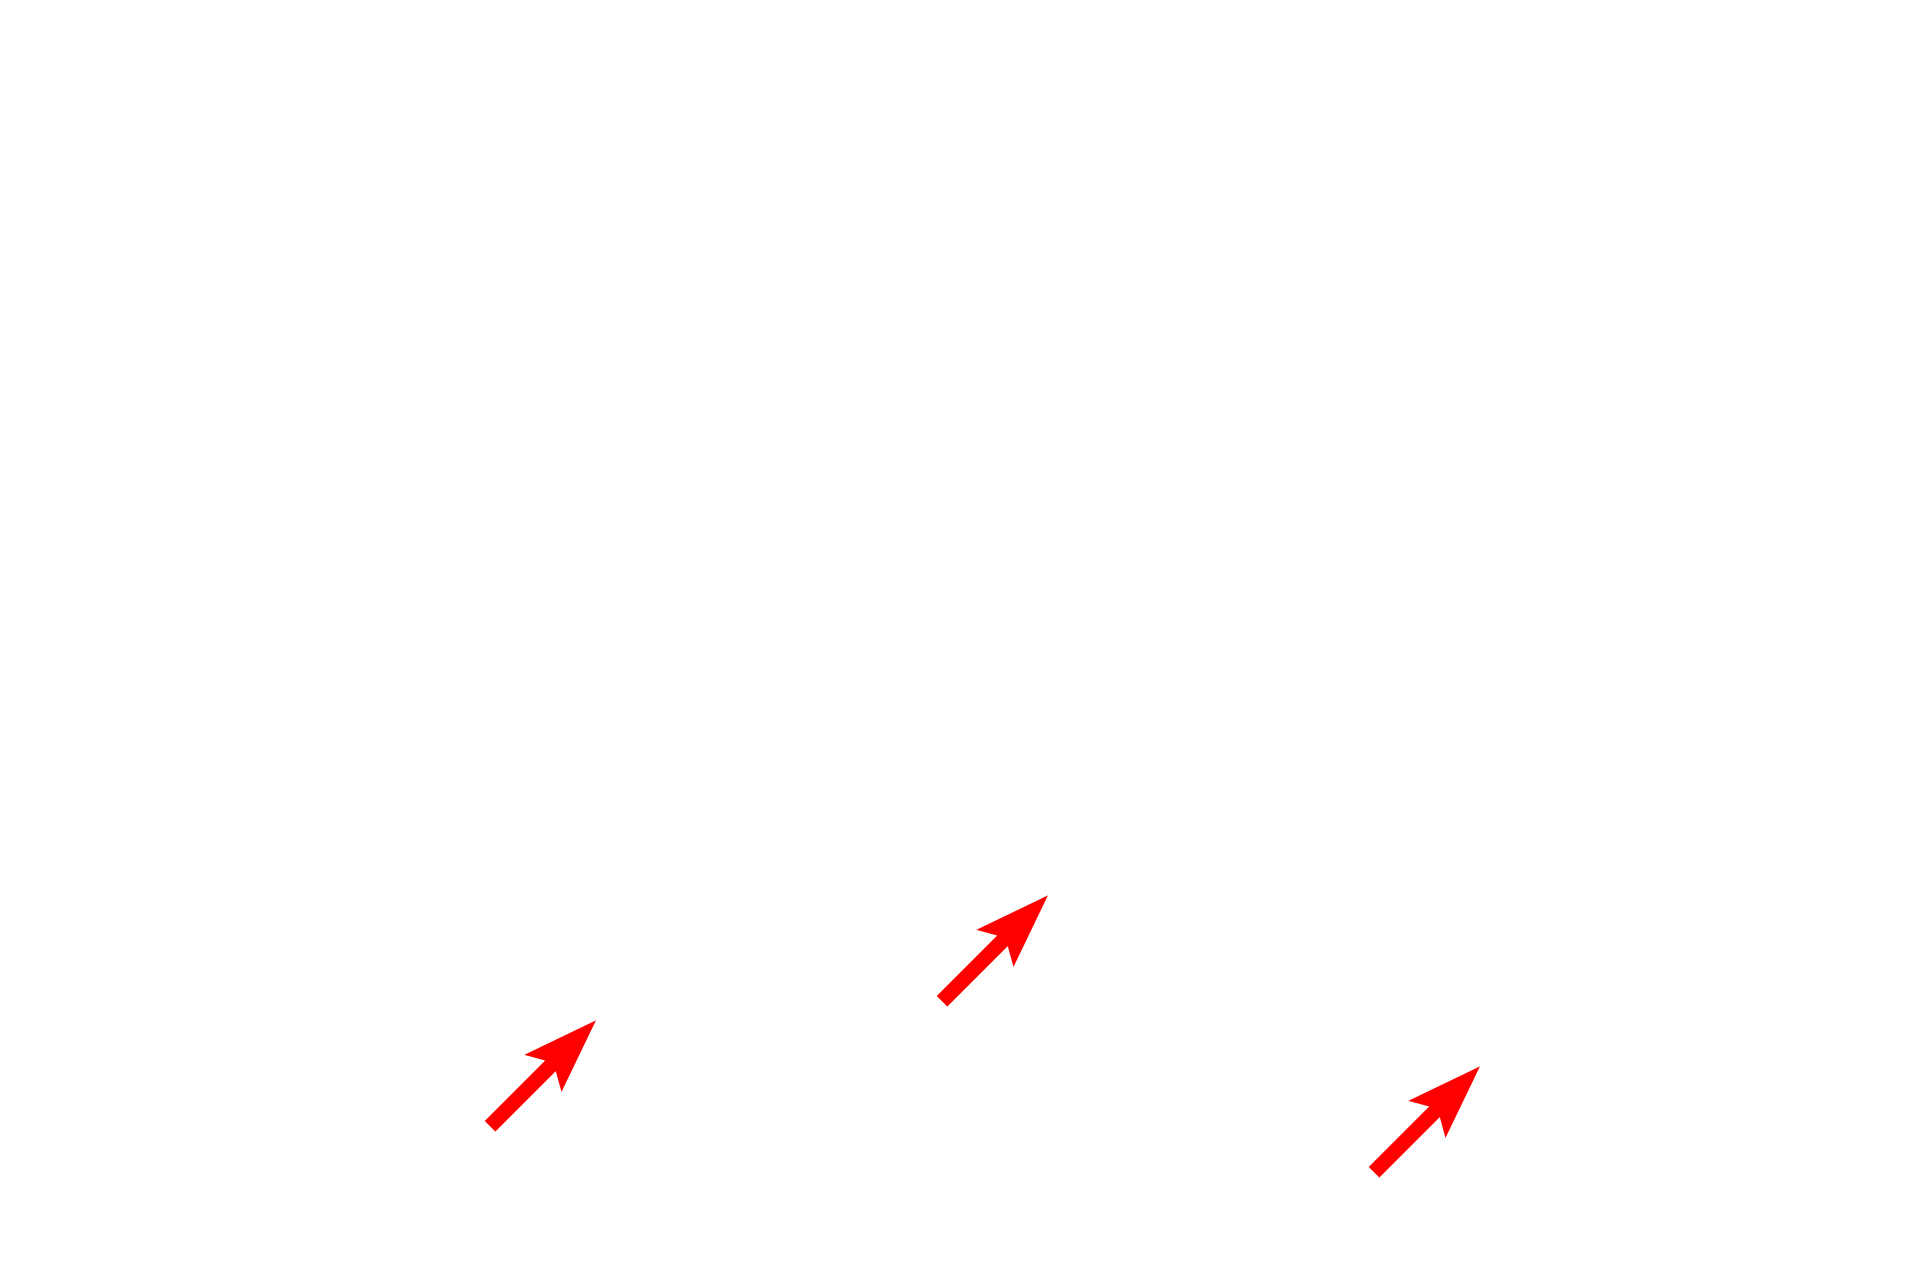 Epimysium <p>Skeletal muscle is invested by three CT layers that bind the muscle together and transmit the force of contraction to the muscle insertion. Endomysium surrounds individual muscle cells; perimysium encloses groups of fibers, defining fascicles. Epimysium surrounds the entire muscle, blends with superficial fascia, and is continuous with a tendon. Masson stain 100x</p>